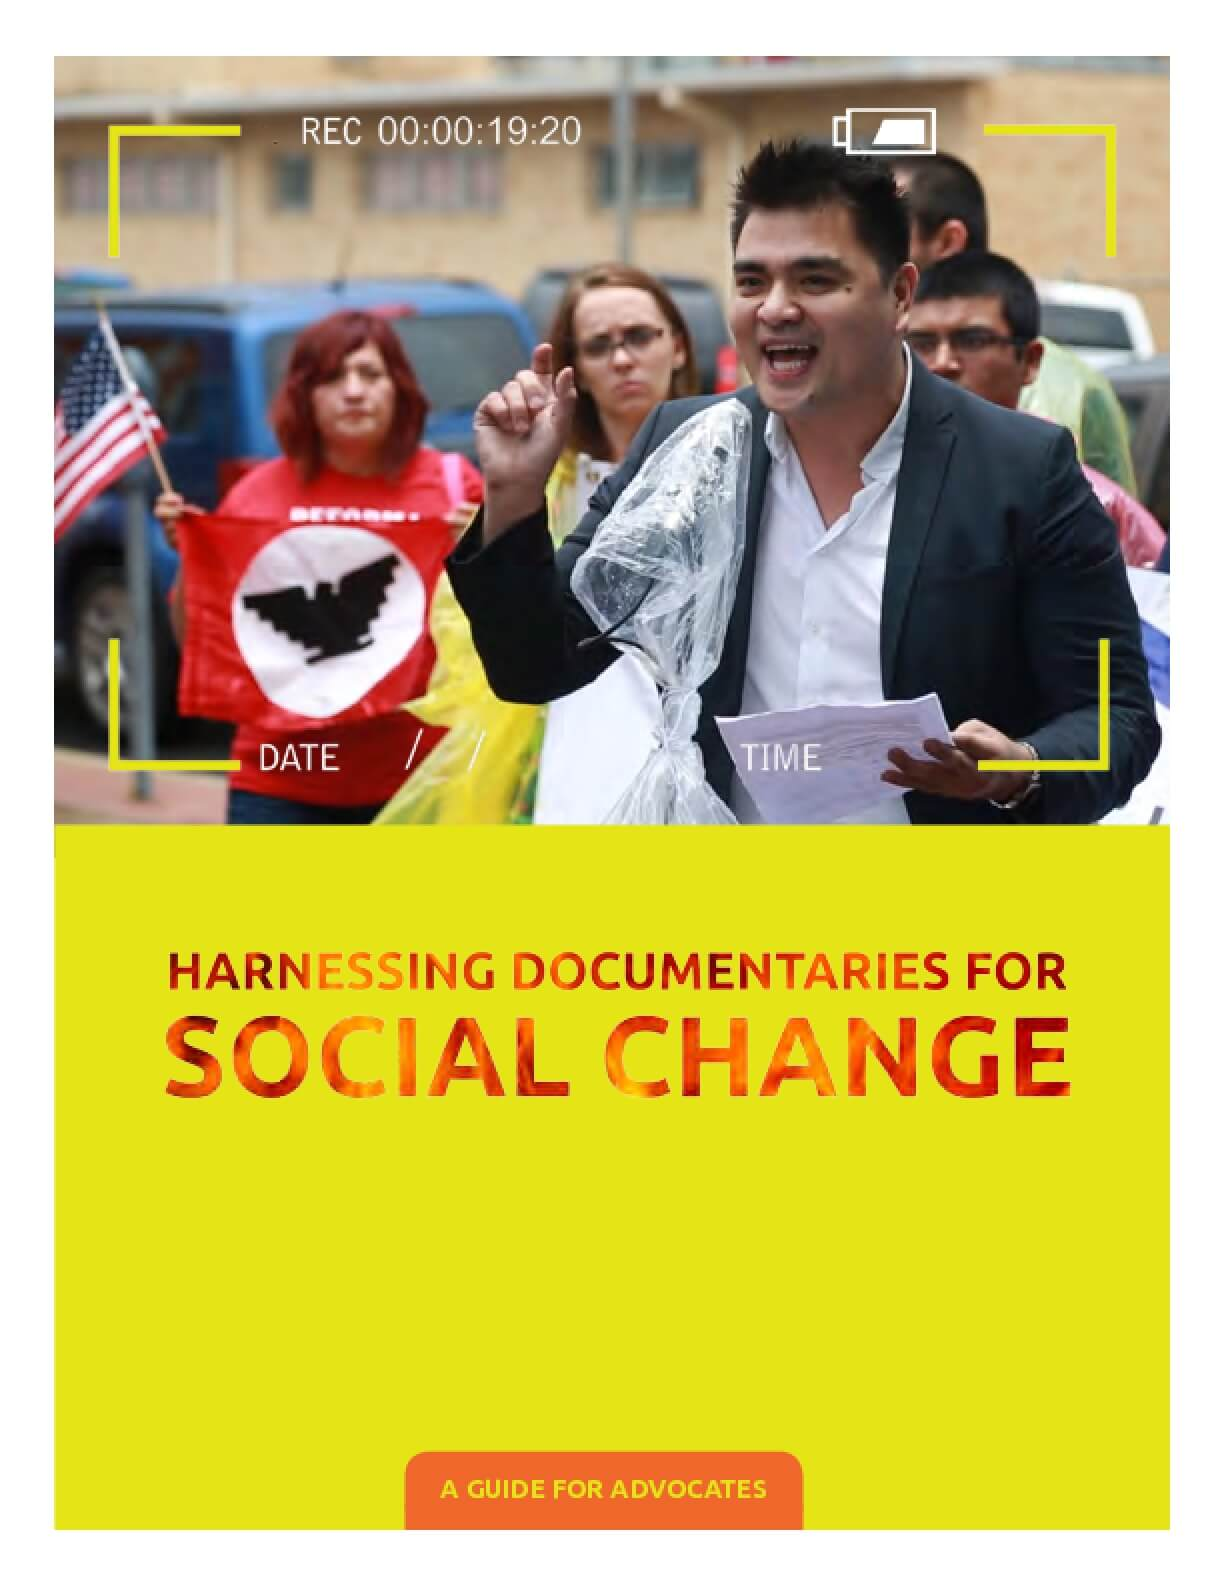 Harnessing Documentaries for Social Change